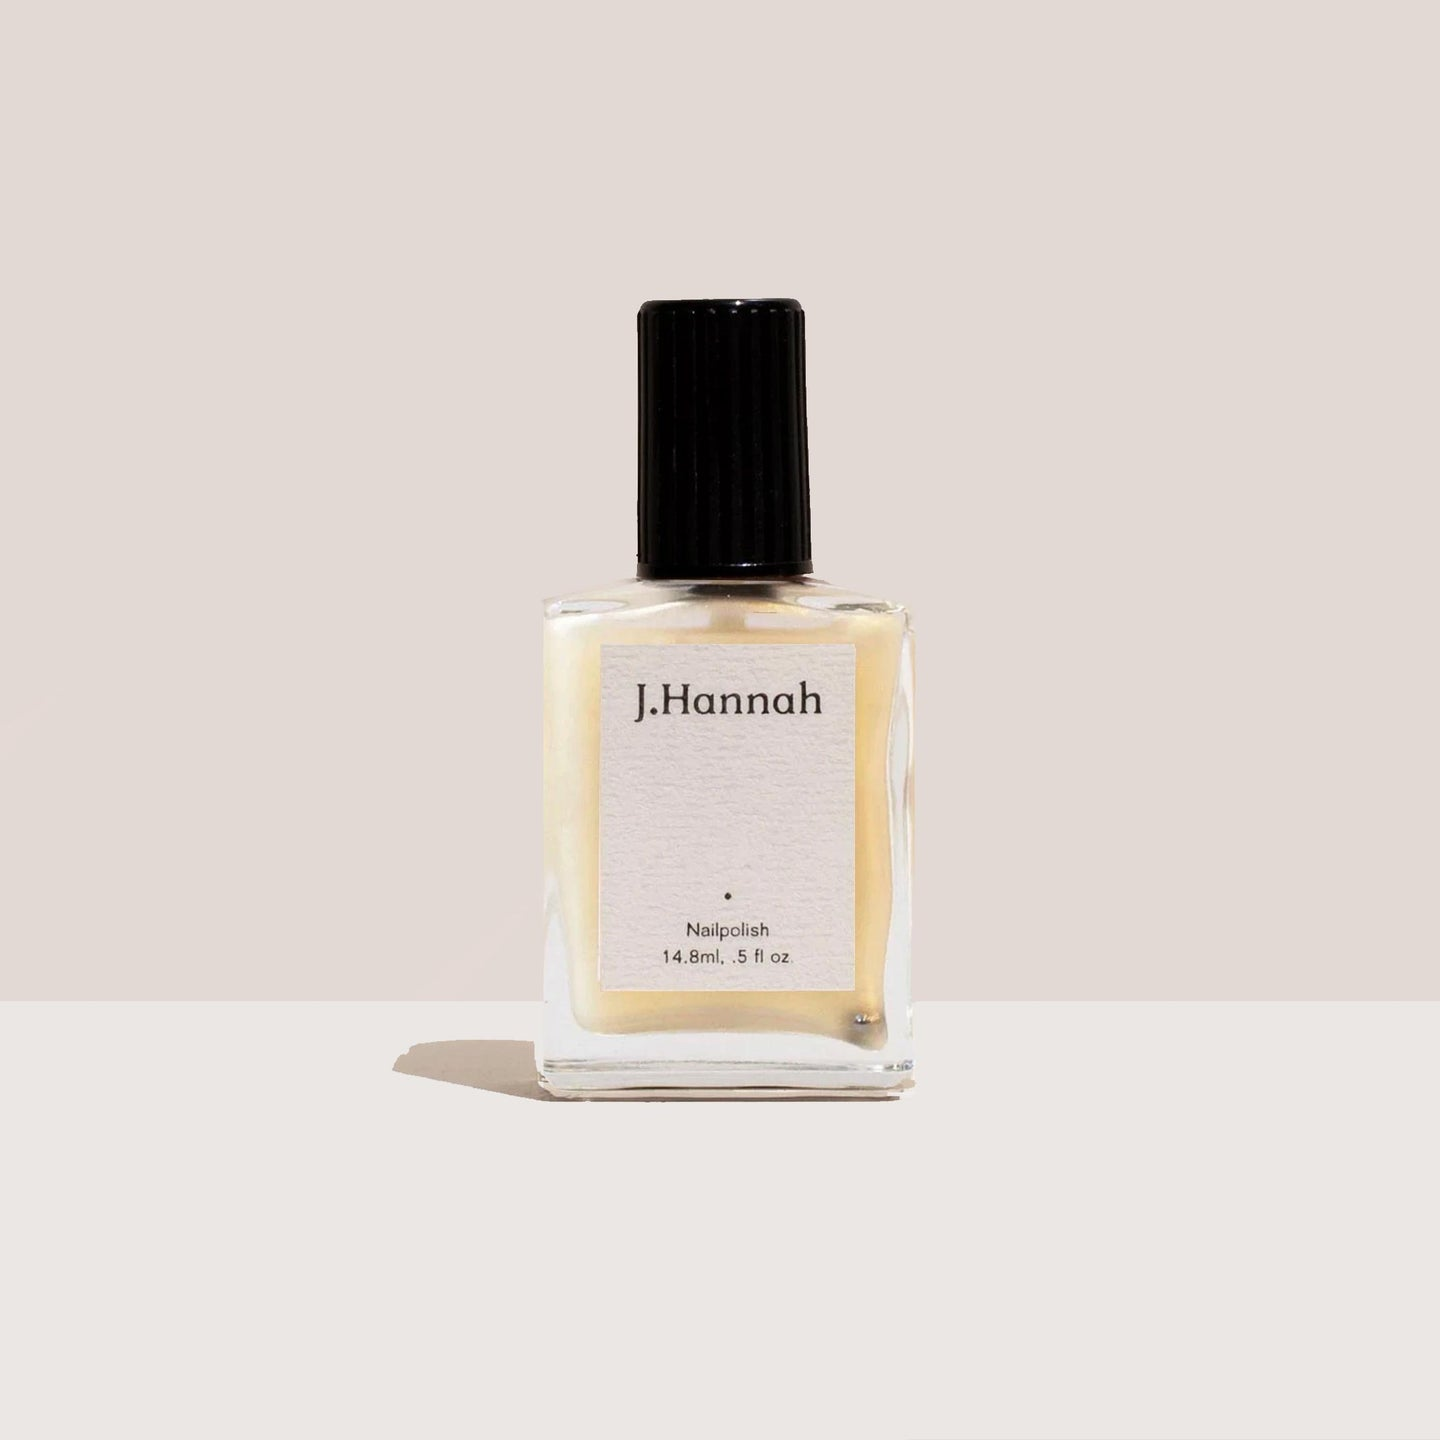 J. Hannah - Nail Polish - Akoya, available at LCD.